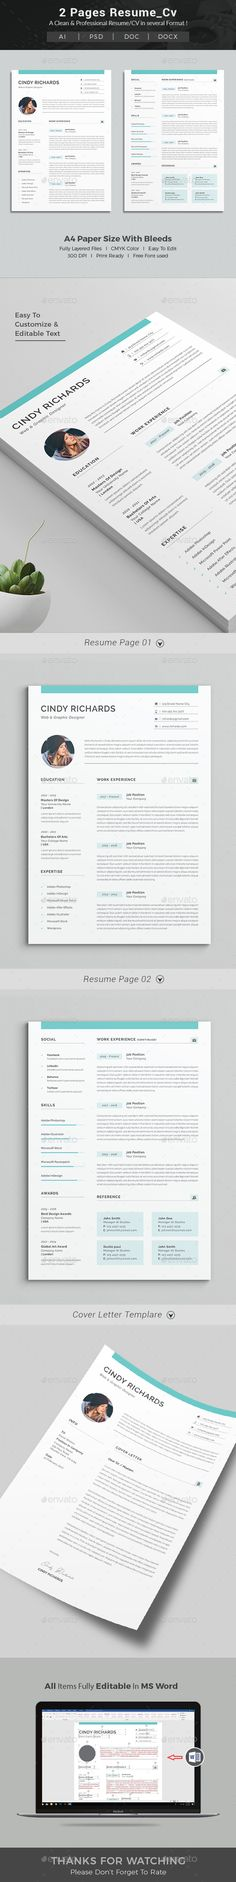 120 best Resumes images on Pinterest in 2018 Interview, Resume